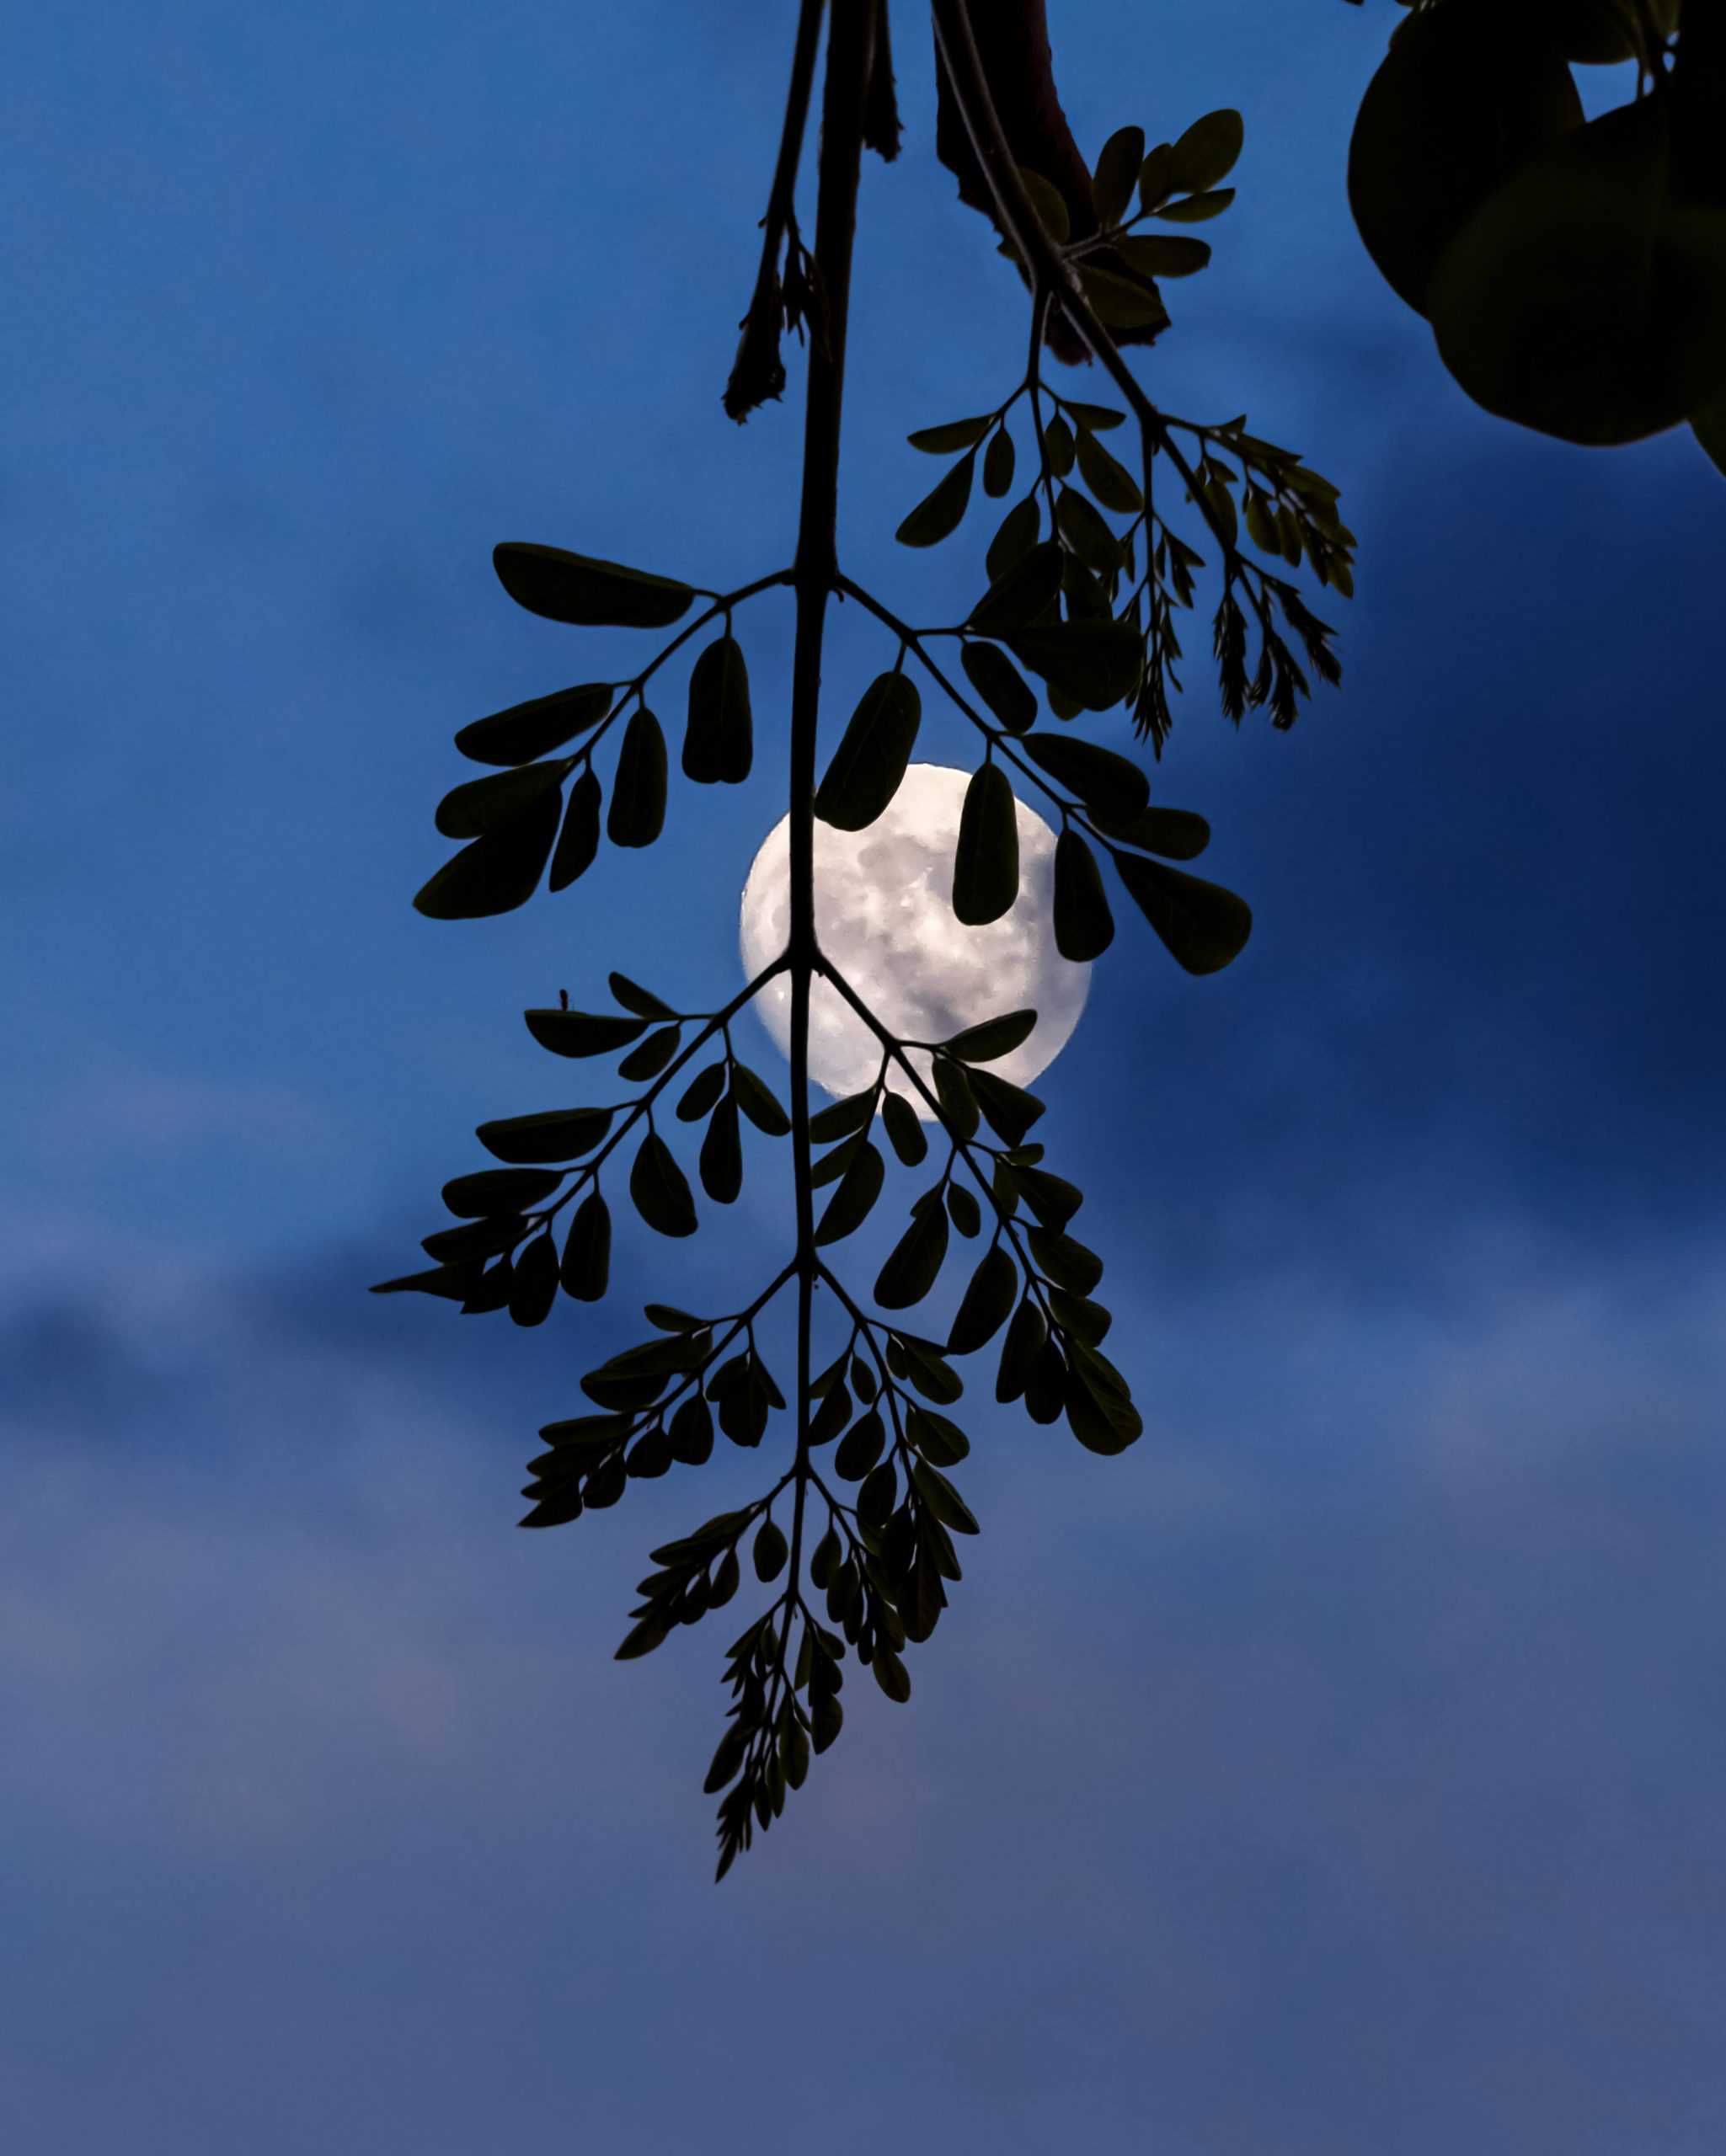 Moon behind a tree branch